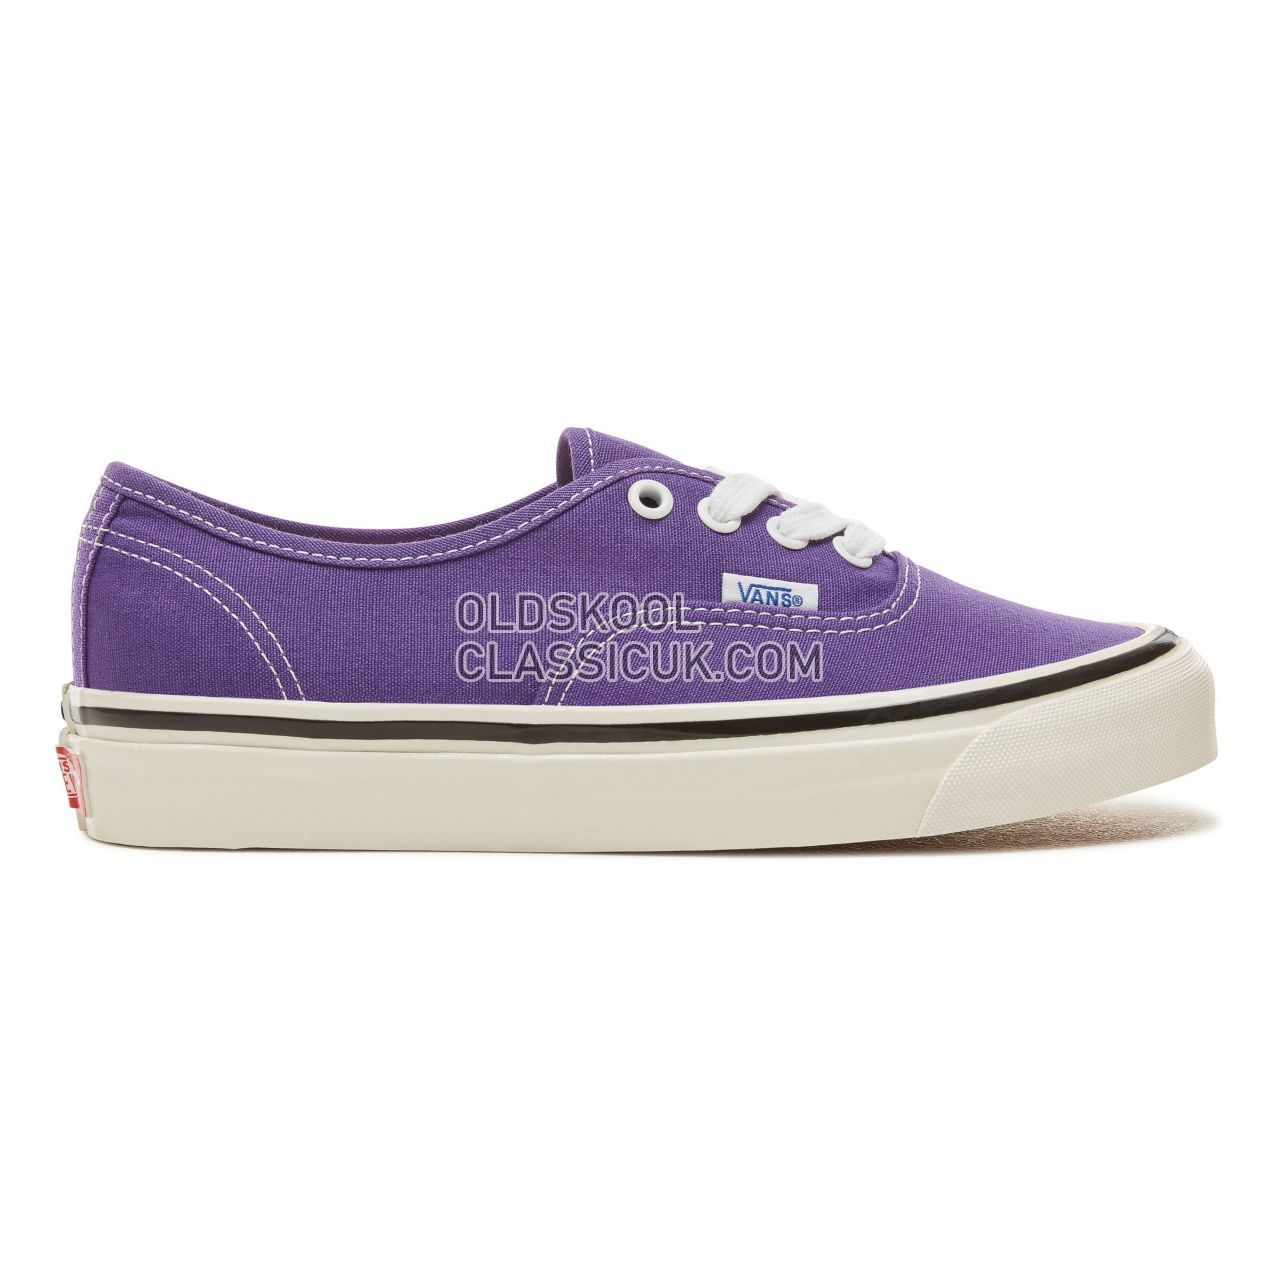 Vans Anaheim Factory Authentic 44 Sneakers Womens (Anaheim Factory) Og Bright Purple VA38ENU6A Shoes